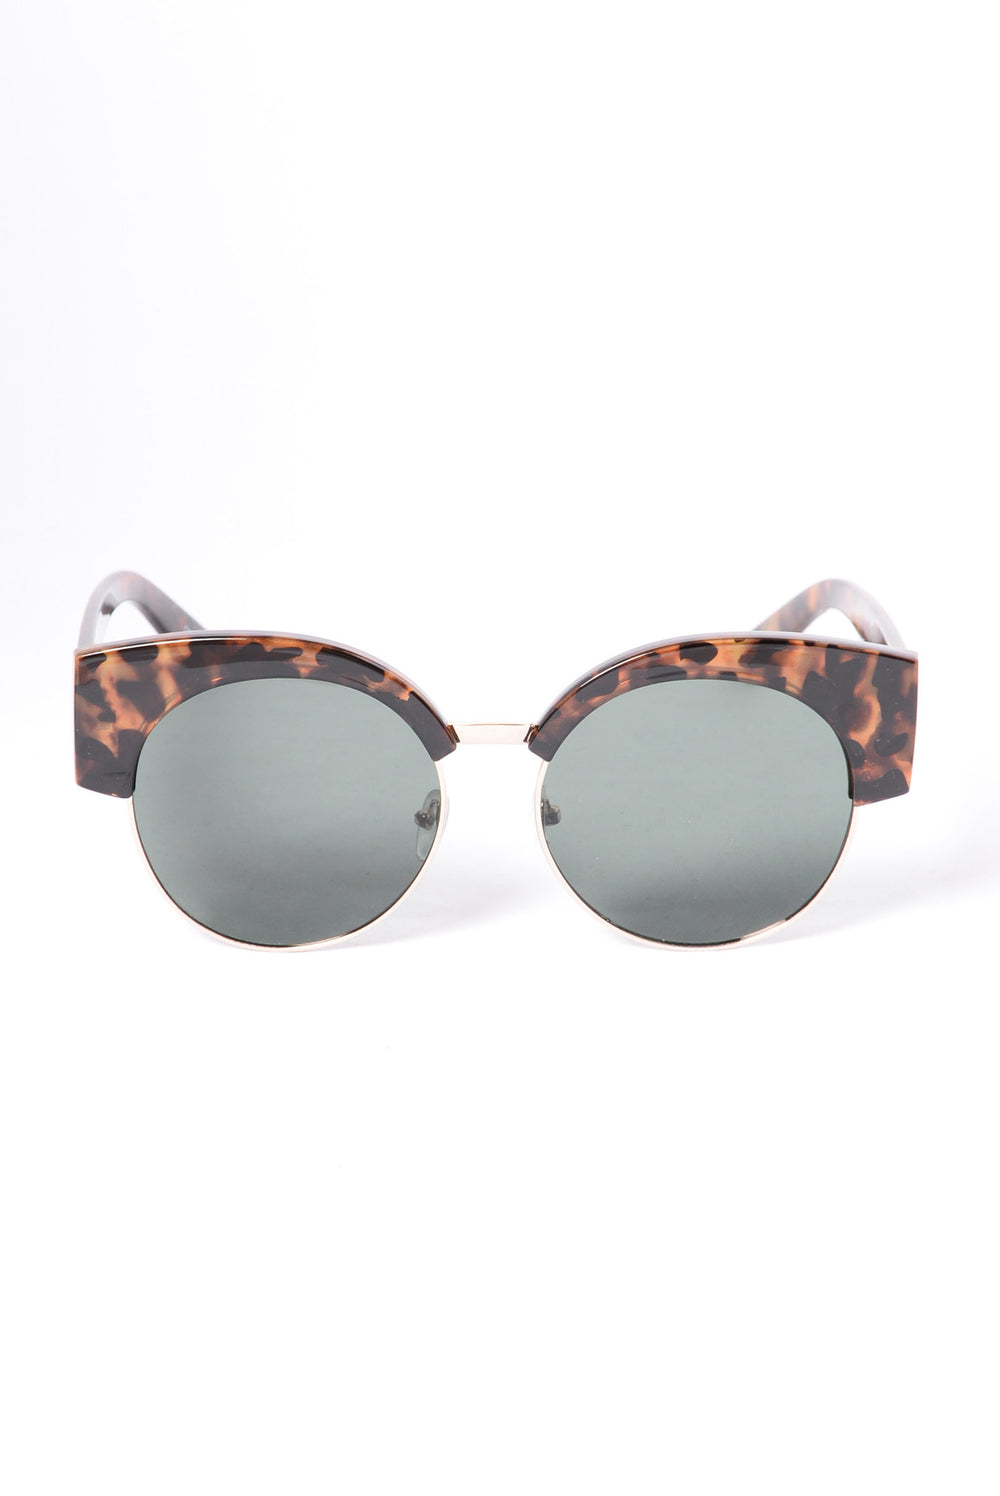 Nessi Beach Sunglasses - Tortoise/Black